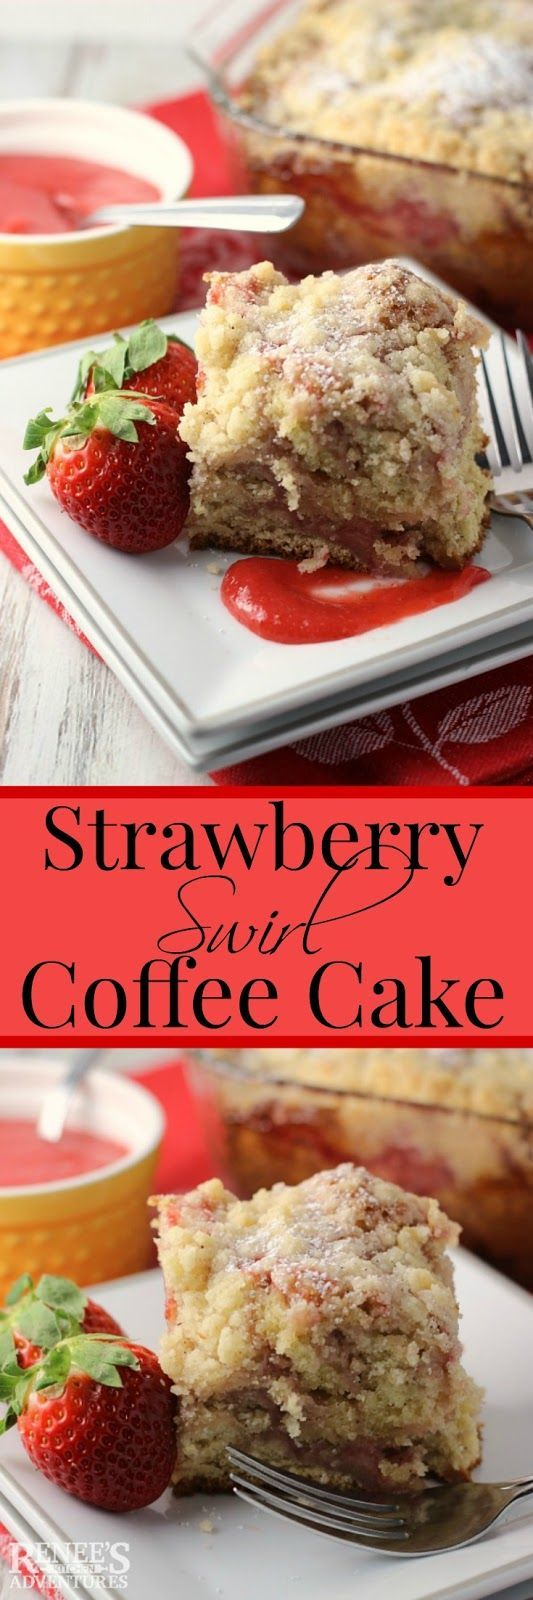 Strawberry Swirl Coffee Cake | Renee's Kitchen Adventures  - dessert recipe for a moist coffee cake with fresh strawberry puree ribbons and a buttery streusel topping #SundaySupper #FLstrawberry @Florida Strawberries